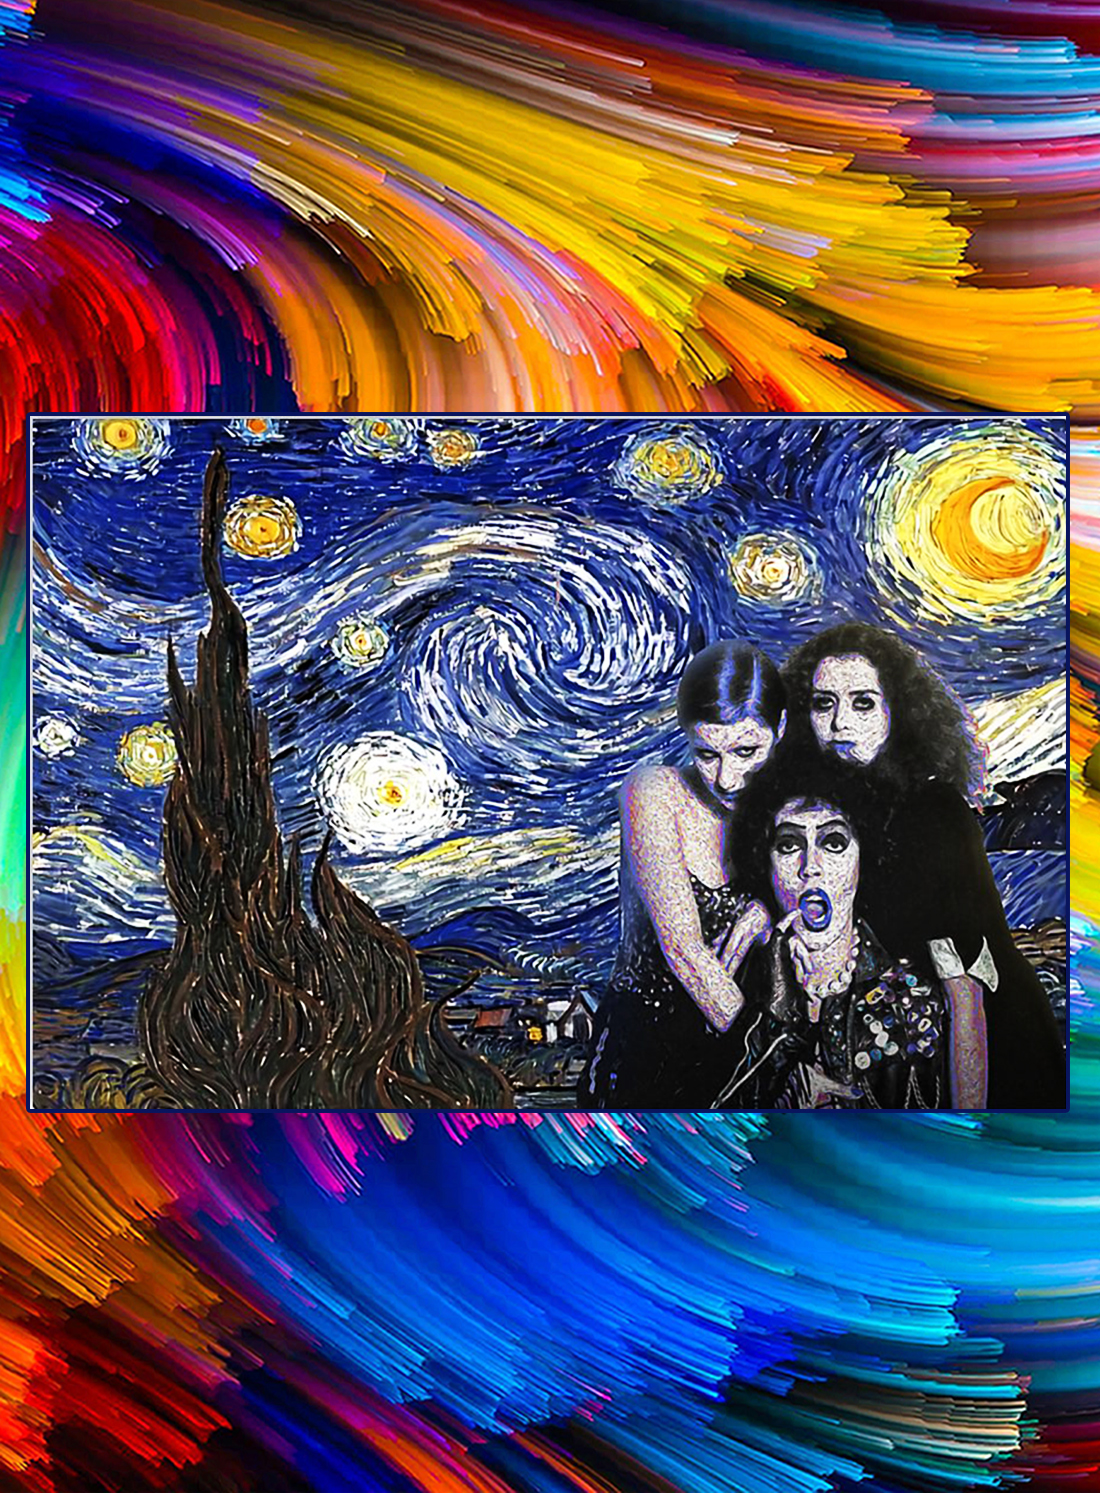 Rocky horror picture show starry night poster - A4